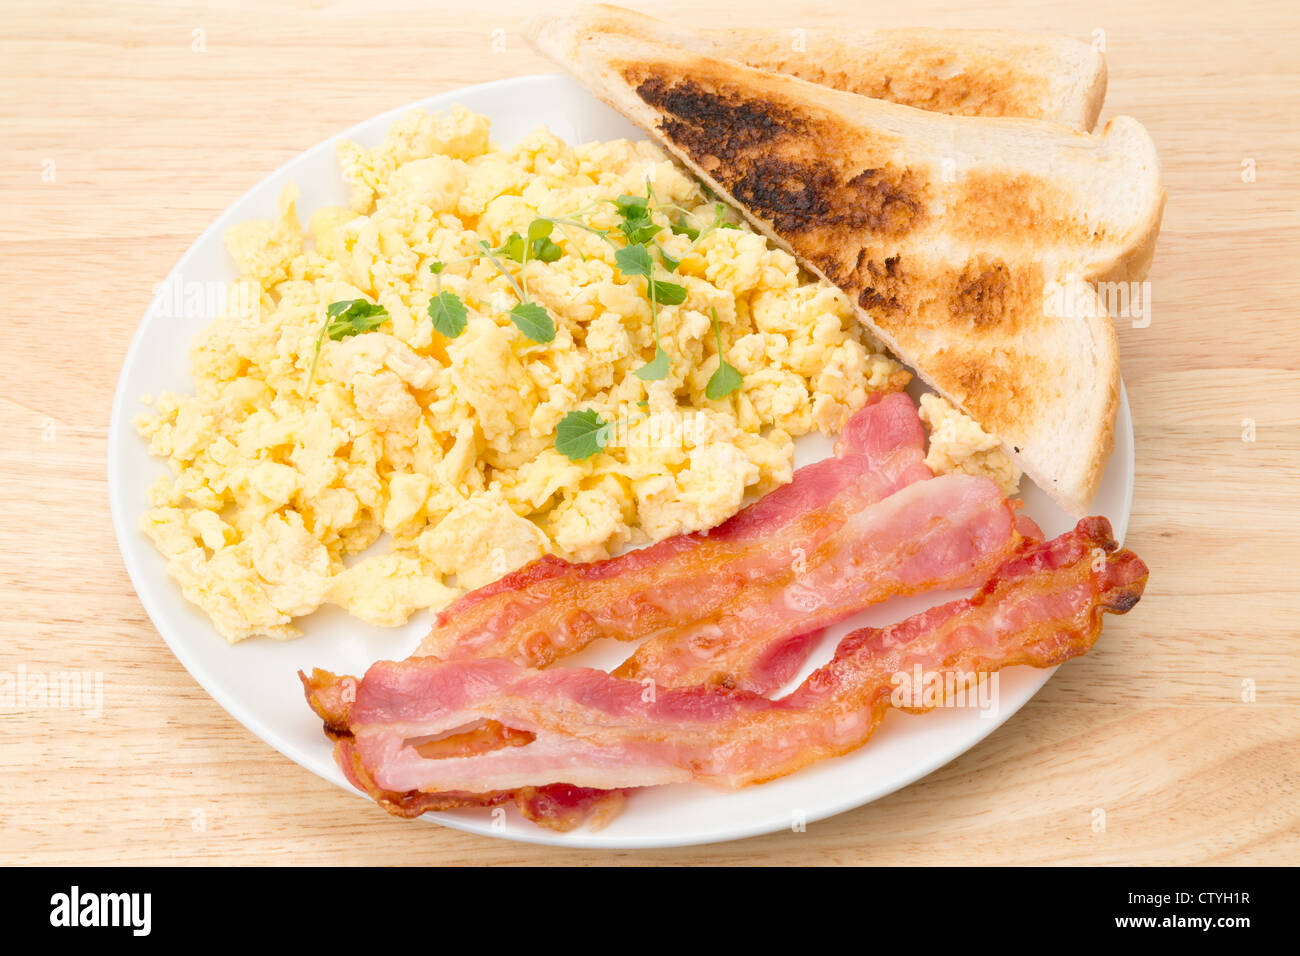 Breakfast of scrambled eggs with streaky bacon and slices of toasted bread - studio shot - Stock Image